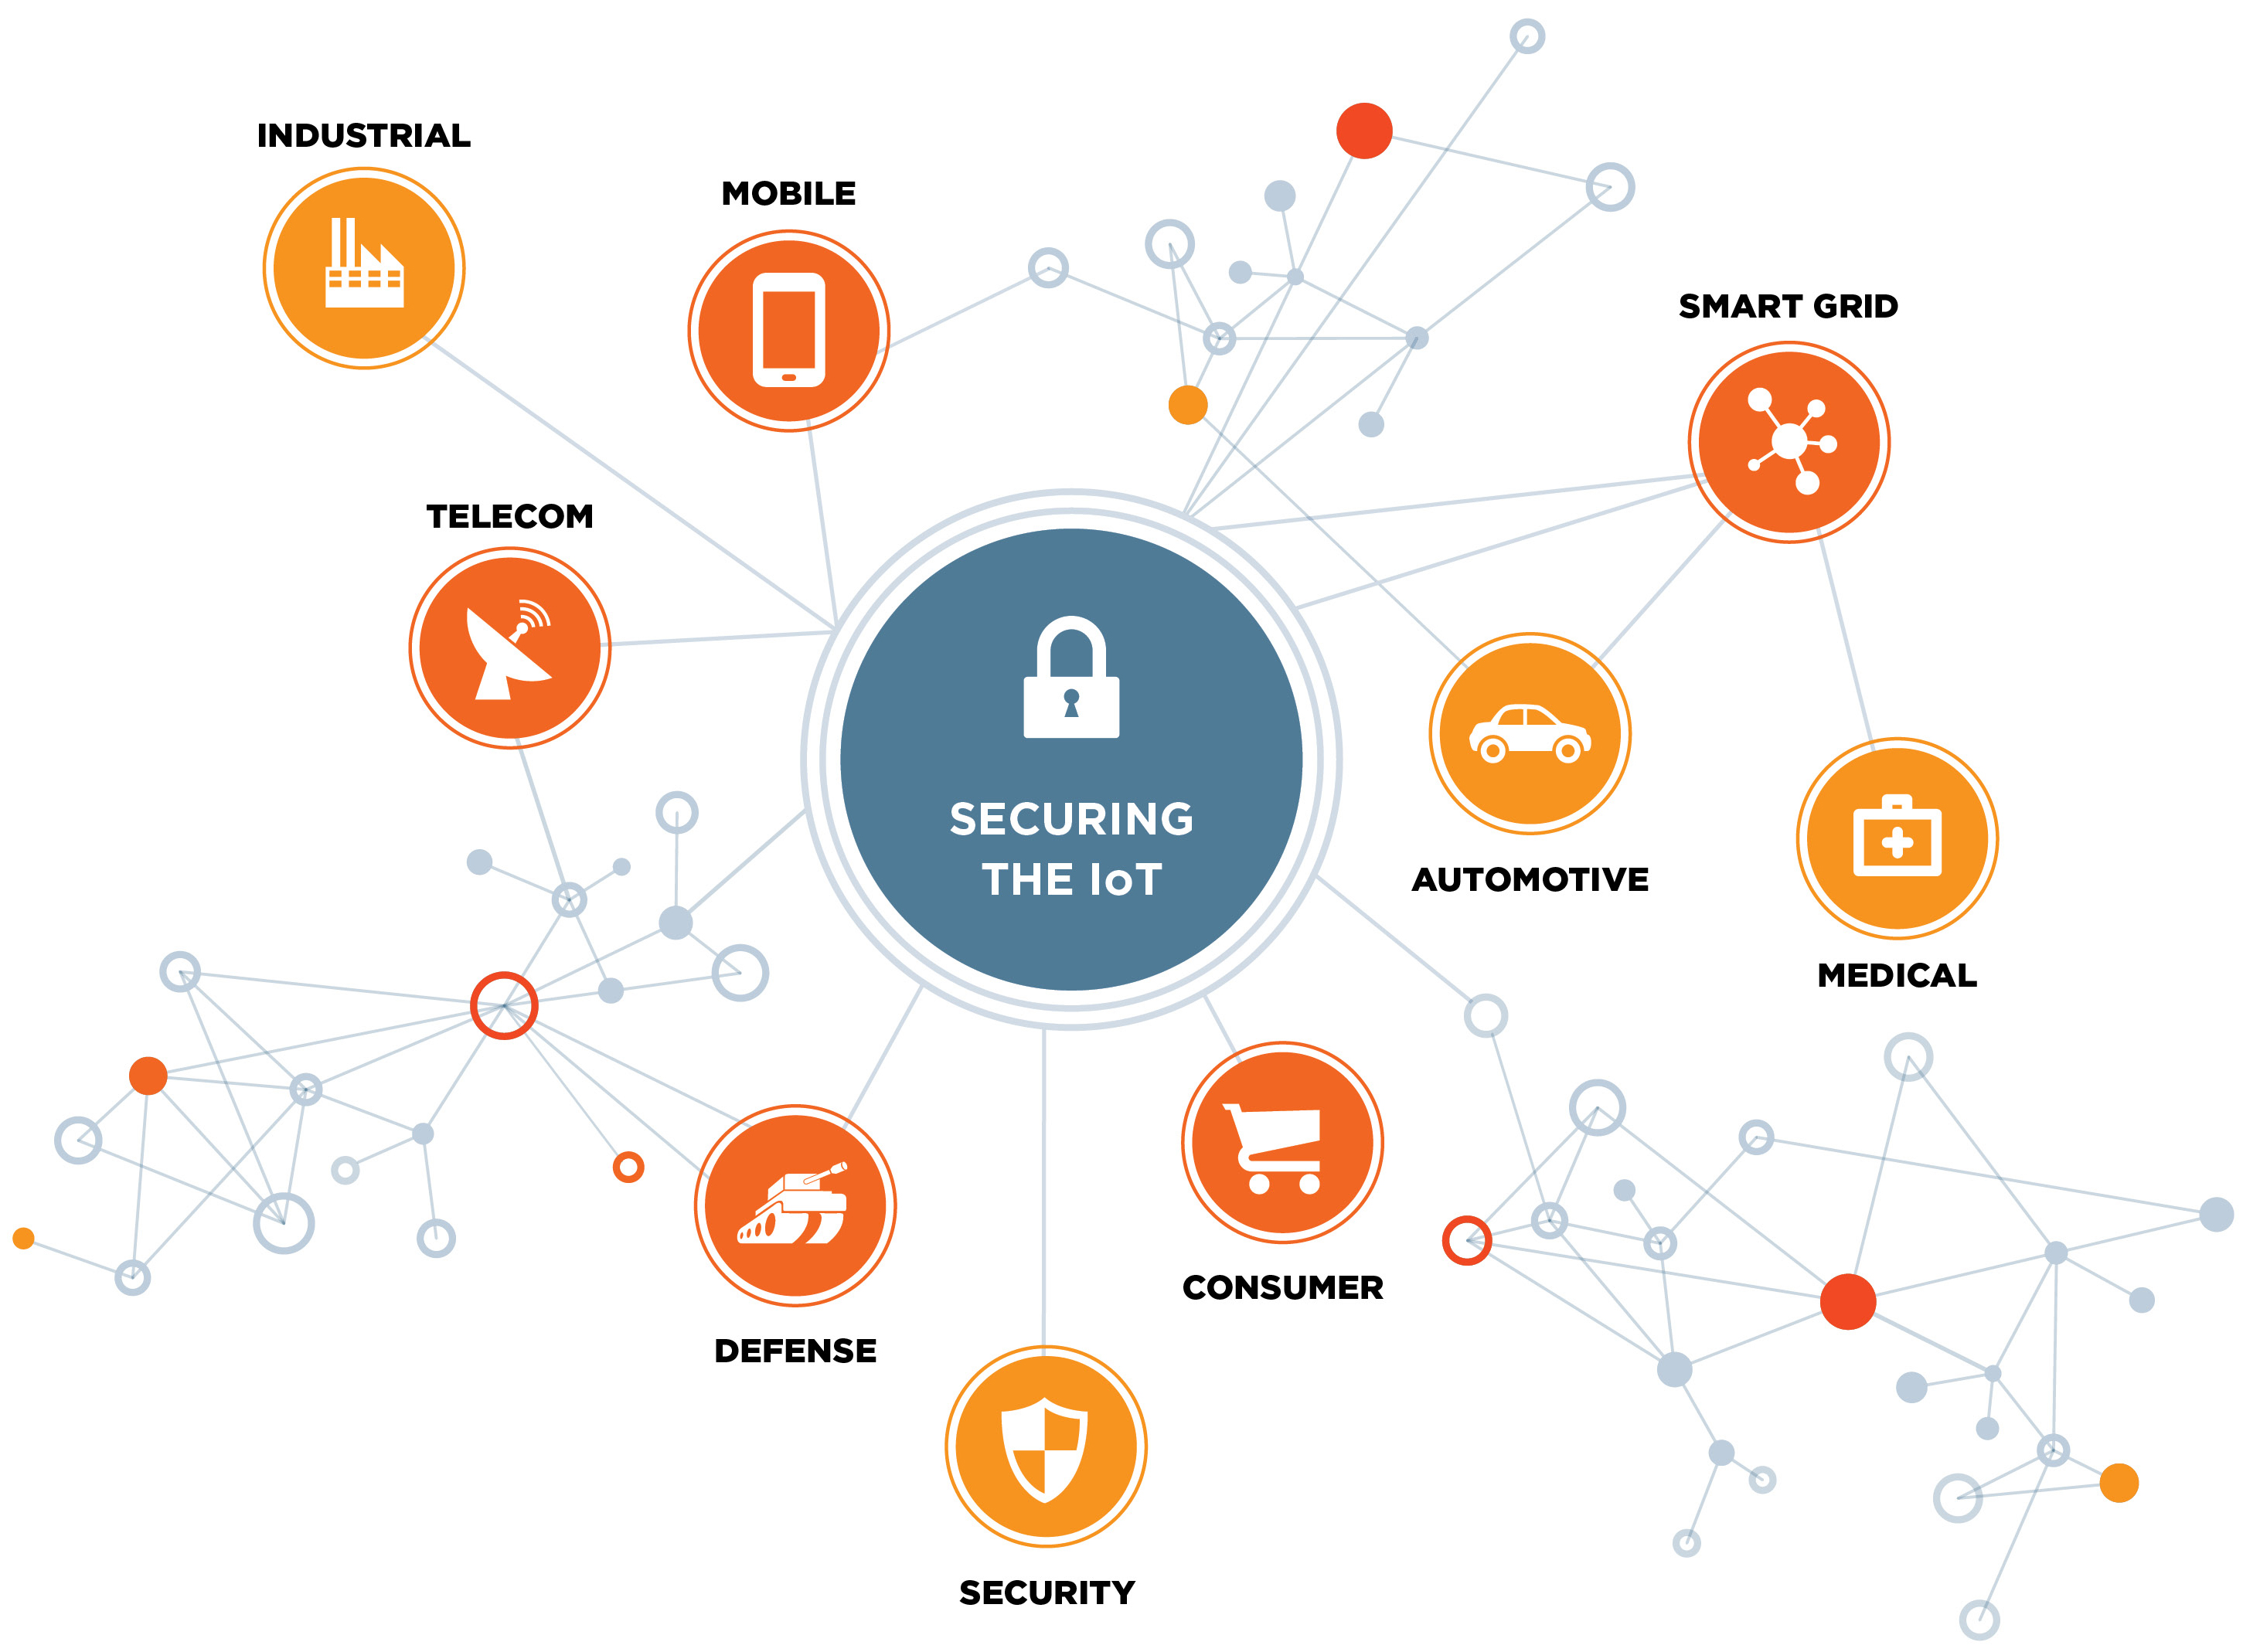 Securing the IoT industry